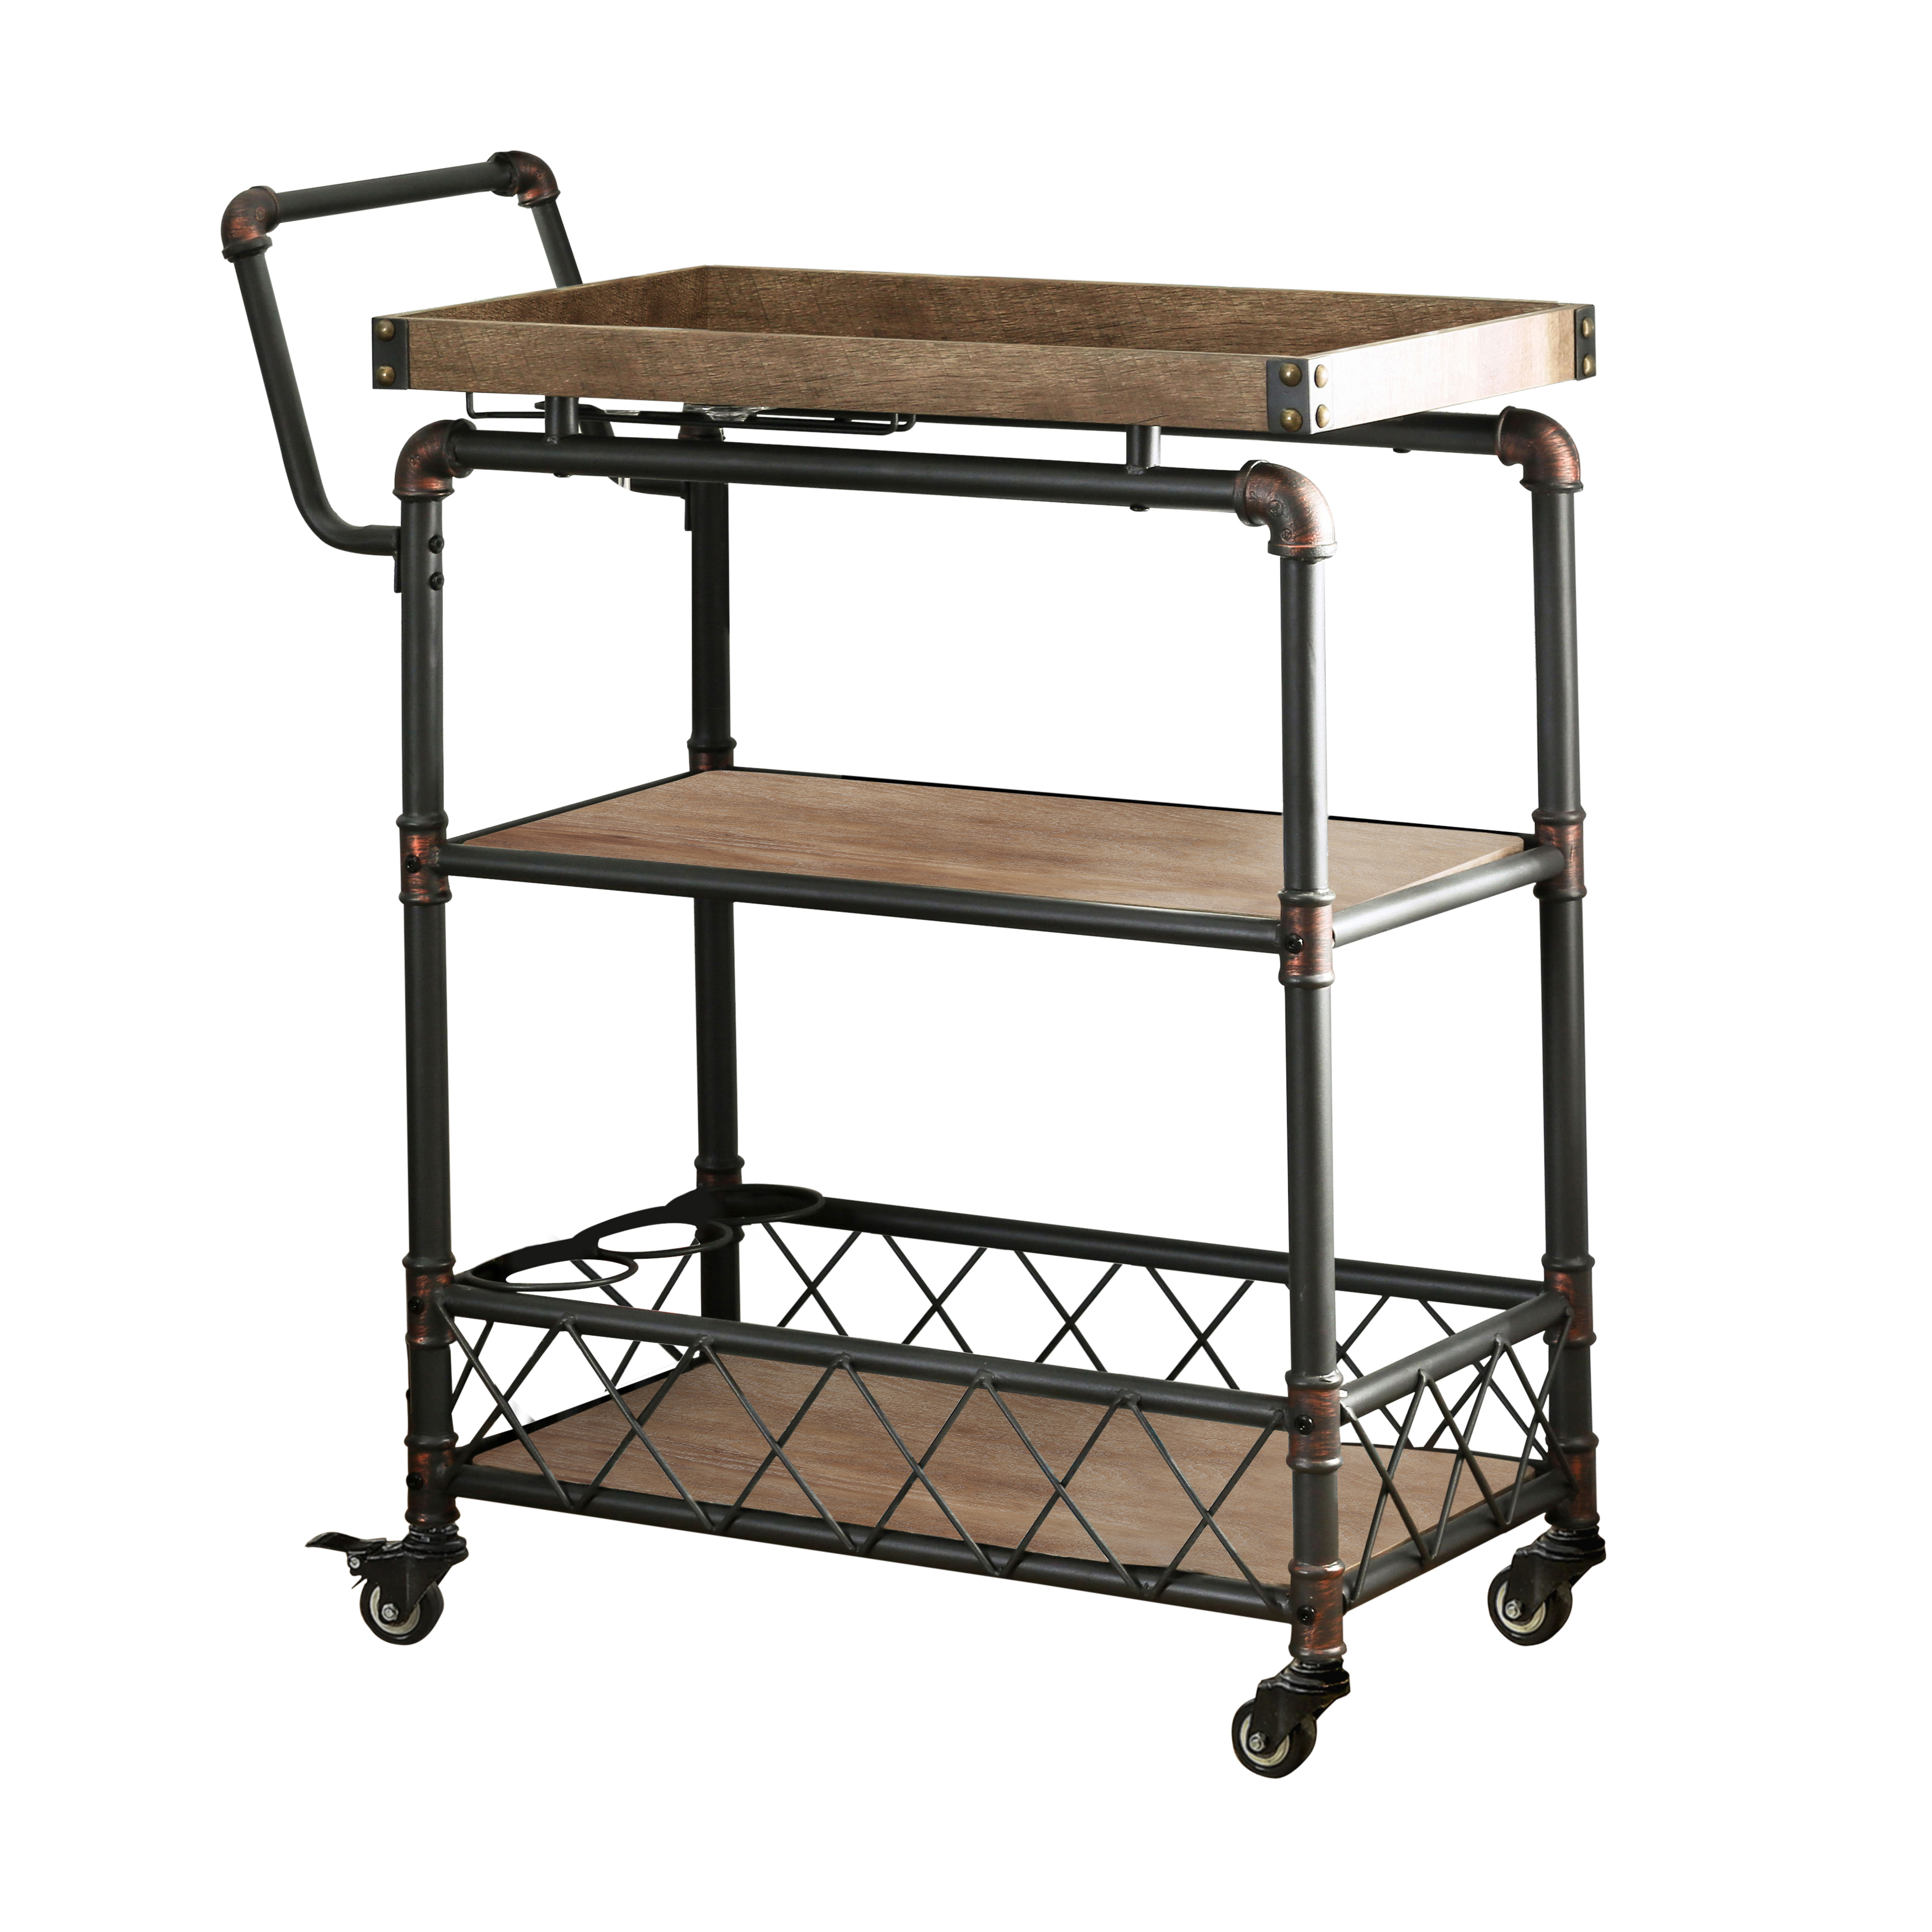 Furniture of America Thorah Industrial Style Serving Cart, Antique Black